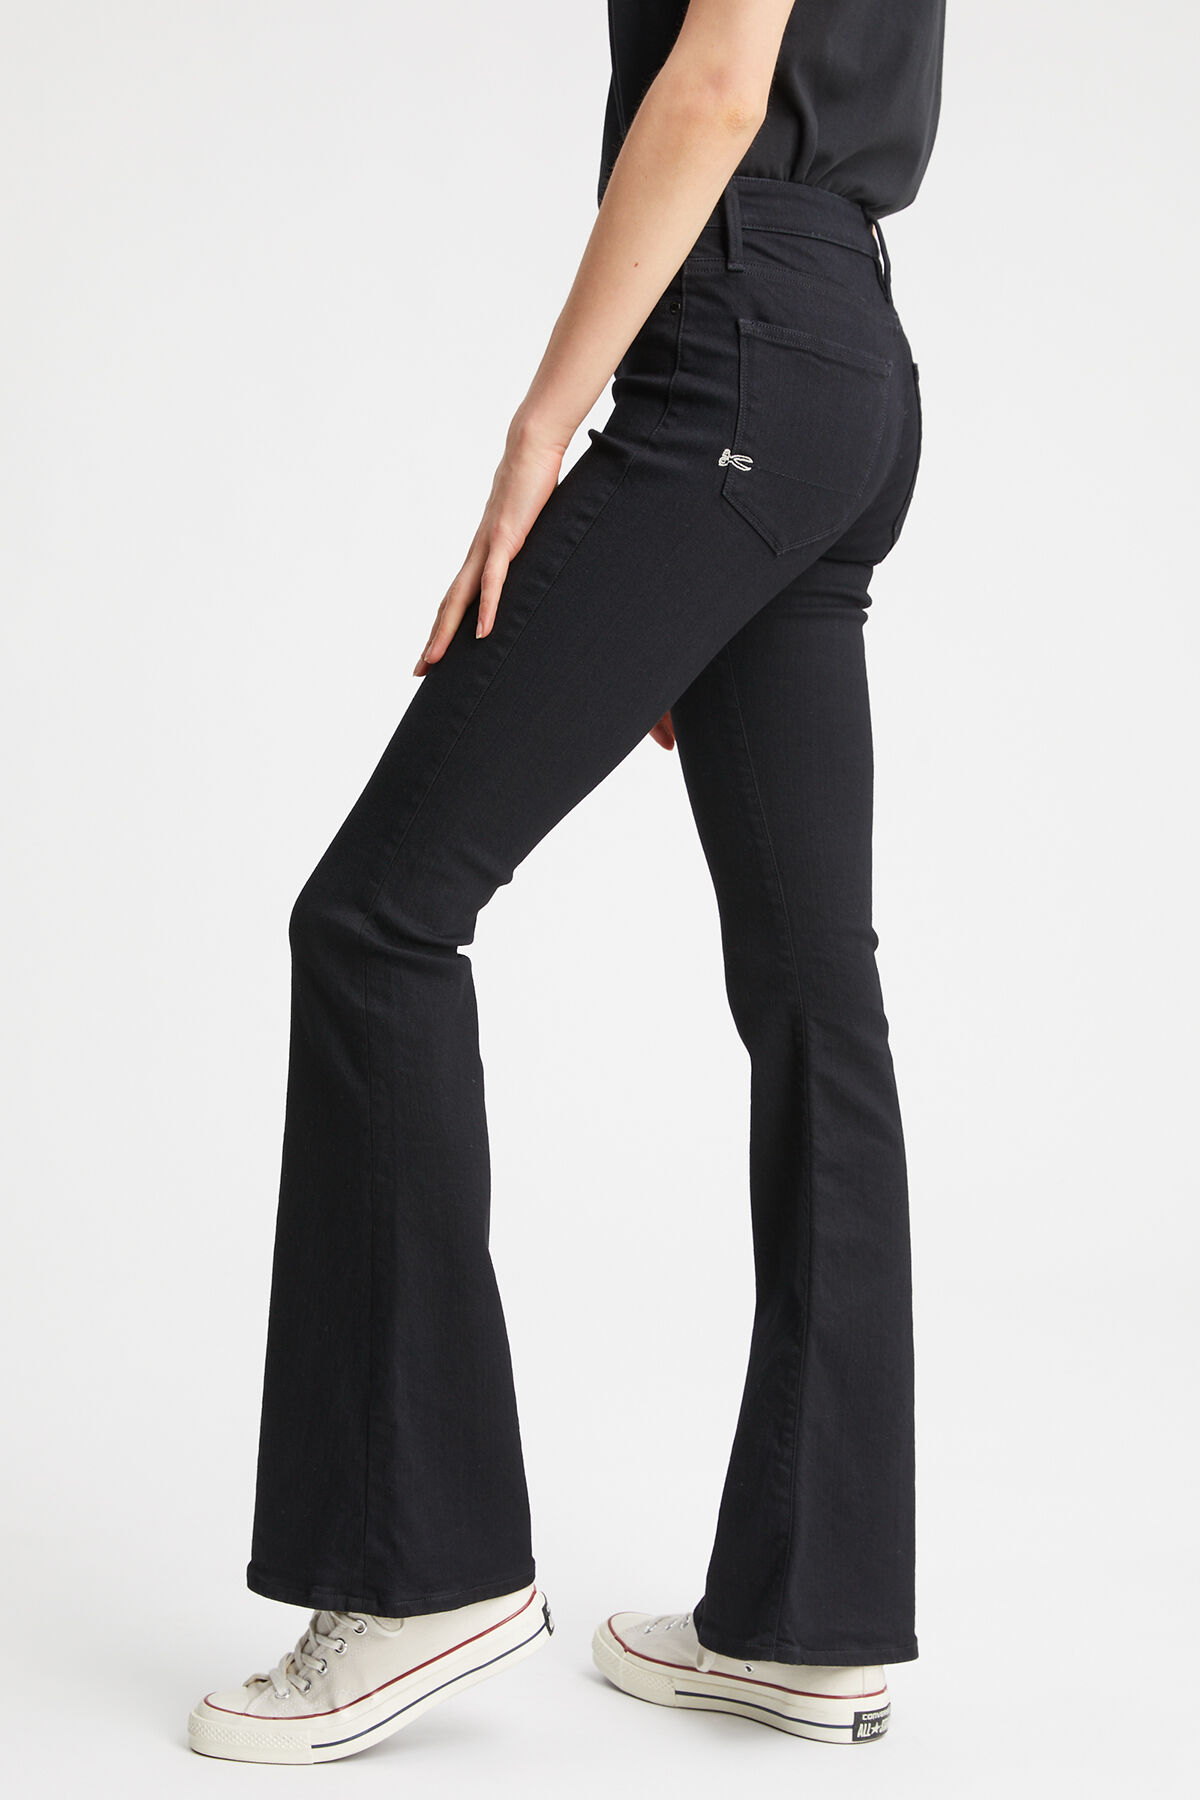 FARRAH Black low impact wash - Flare Fit